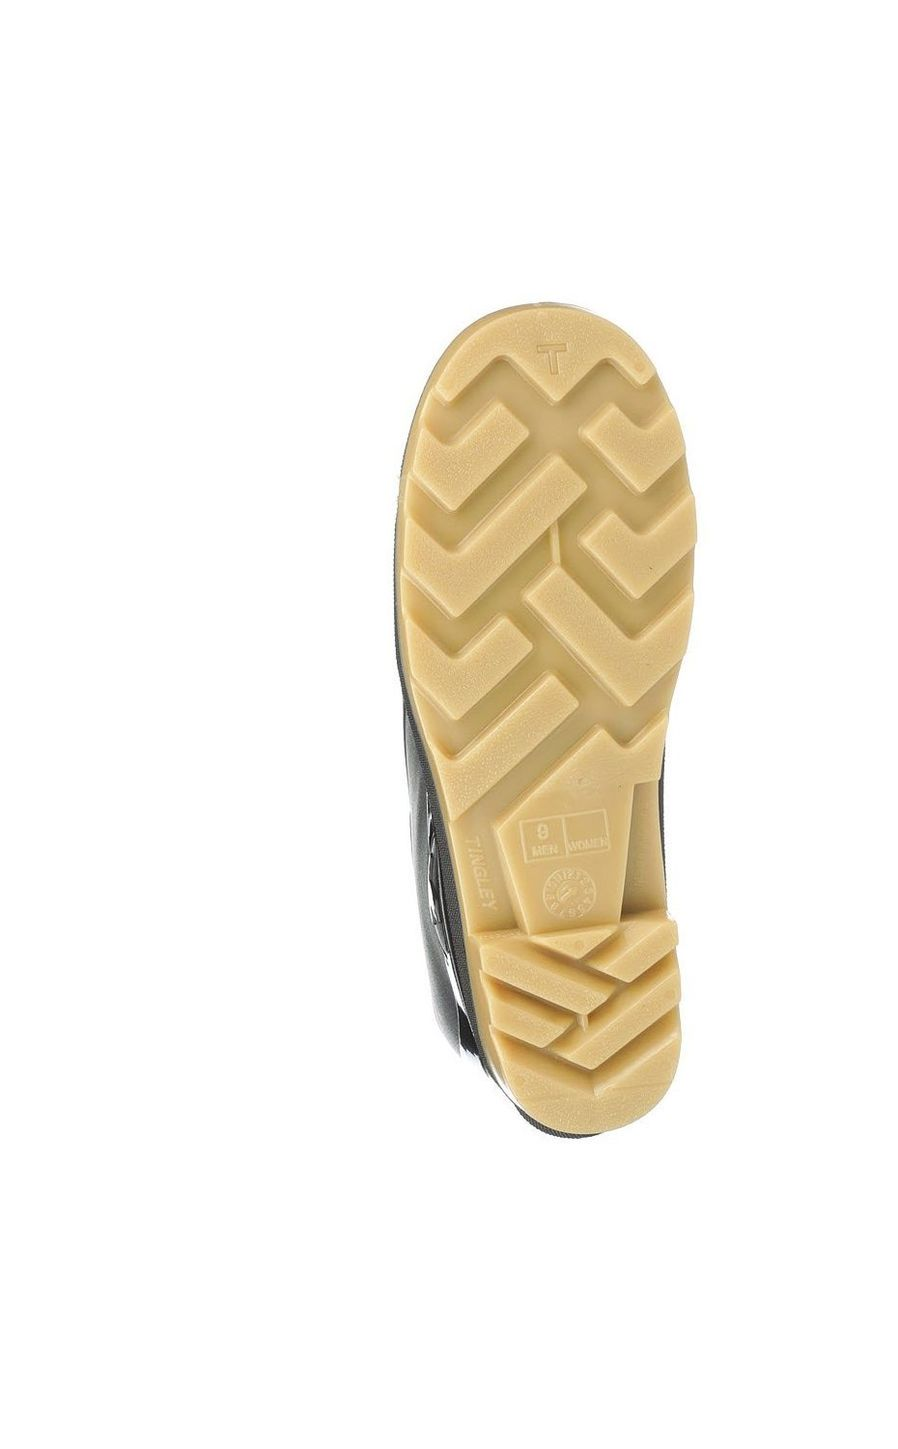 tingley-profile-pvc-work-boots-51254 -15-tall-composite-safety-toes-sole.jpg